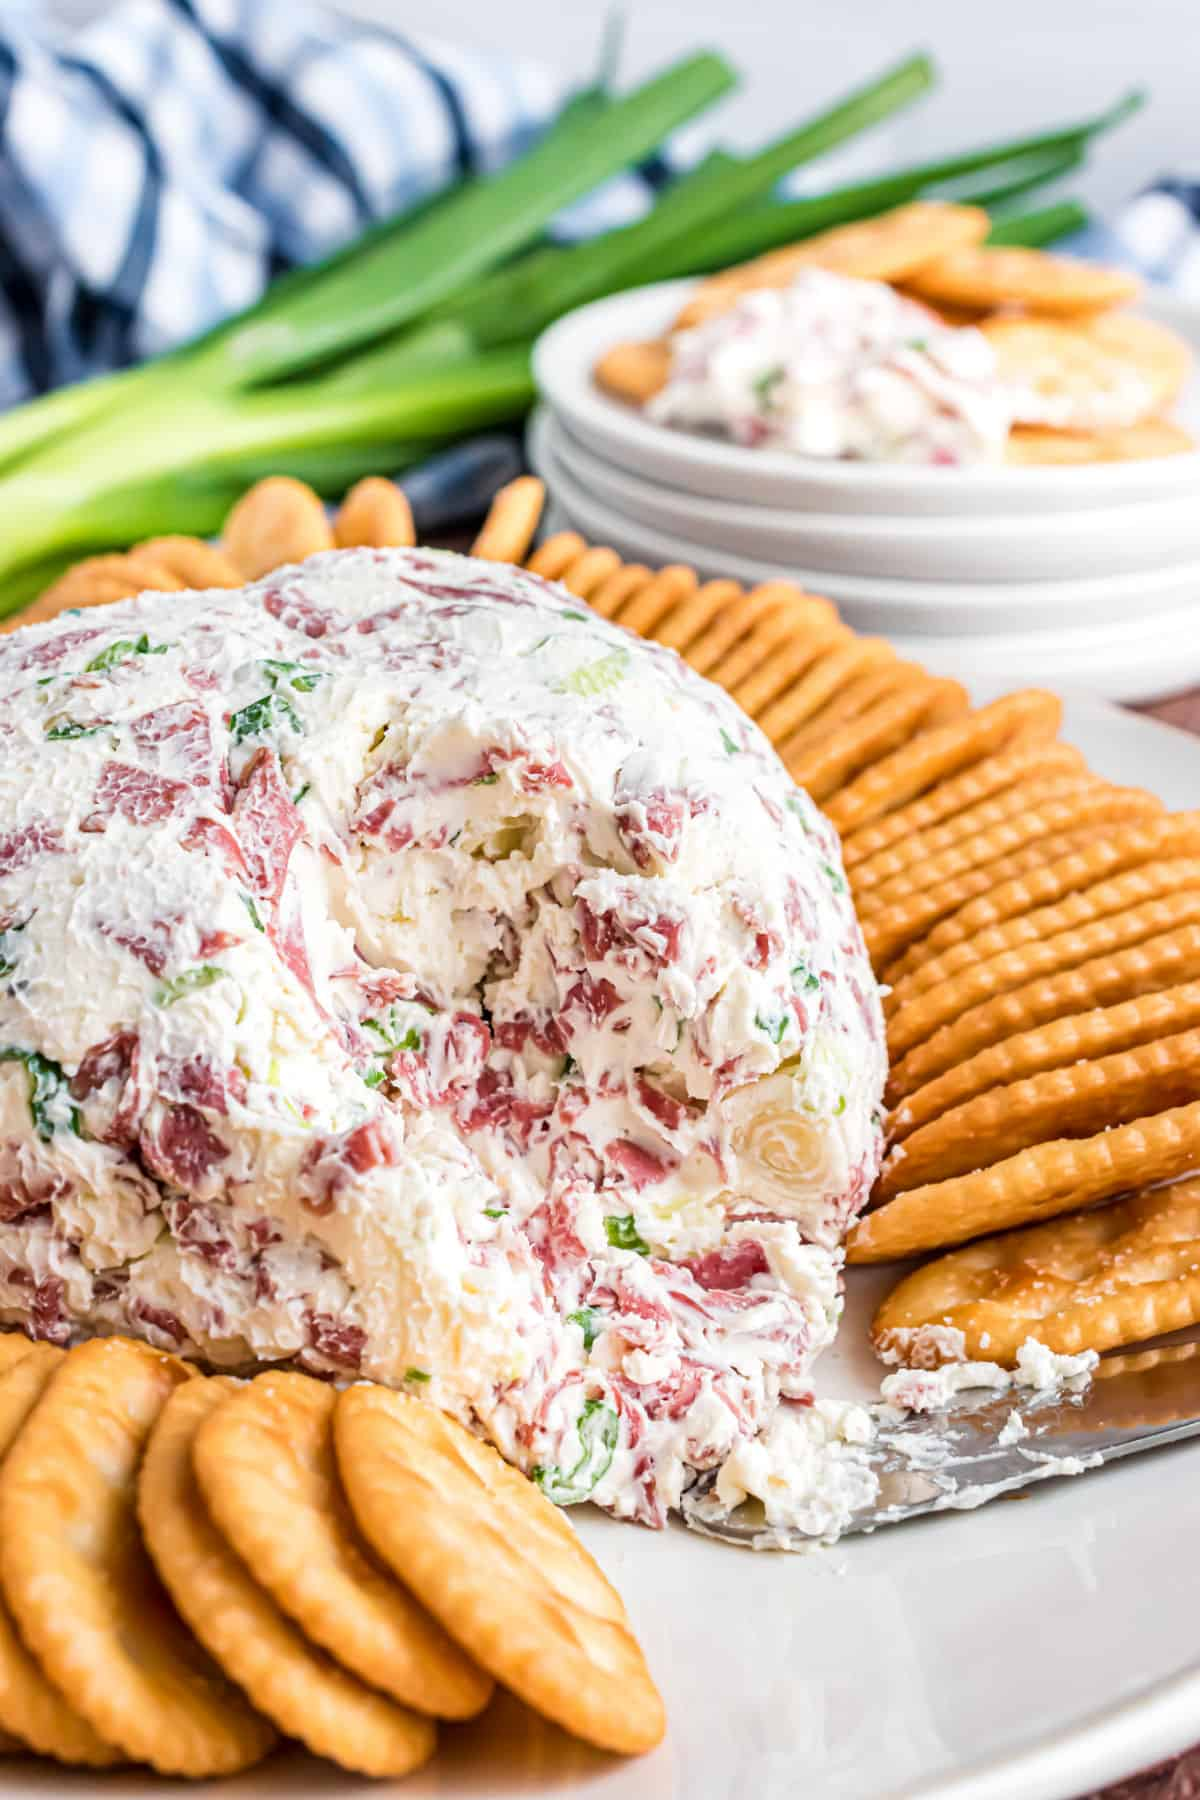 Chipped beef cheese ball with a scoop removed and served with crackers.